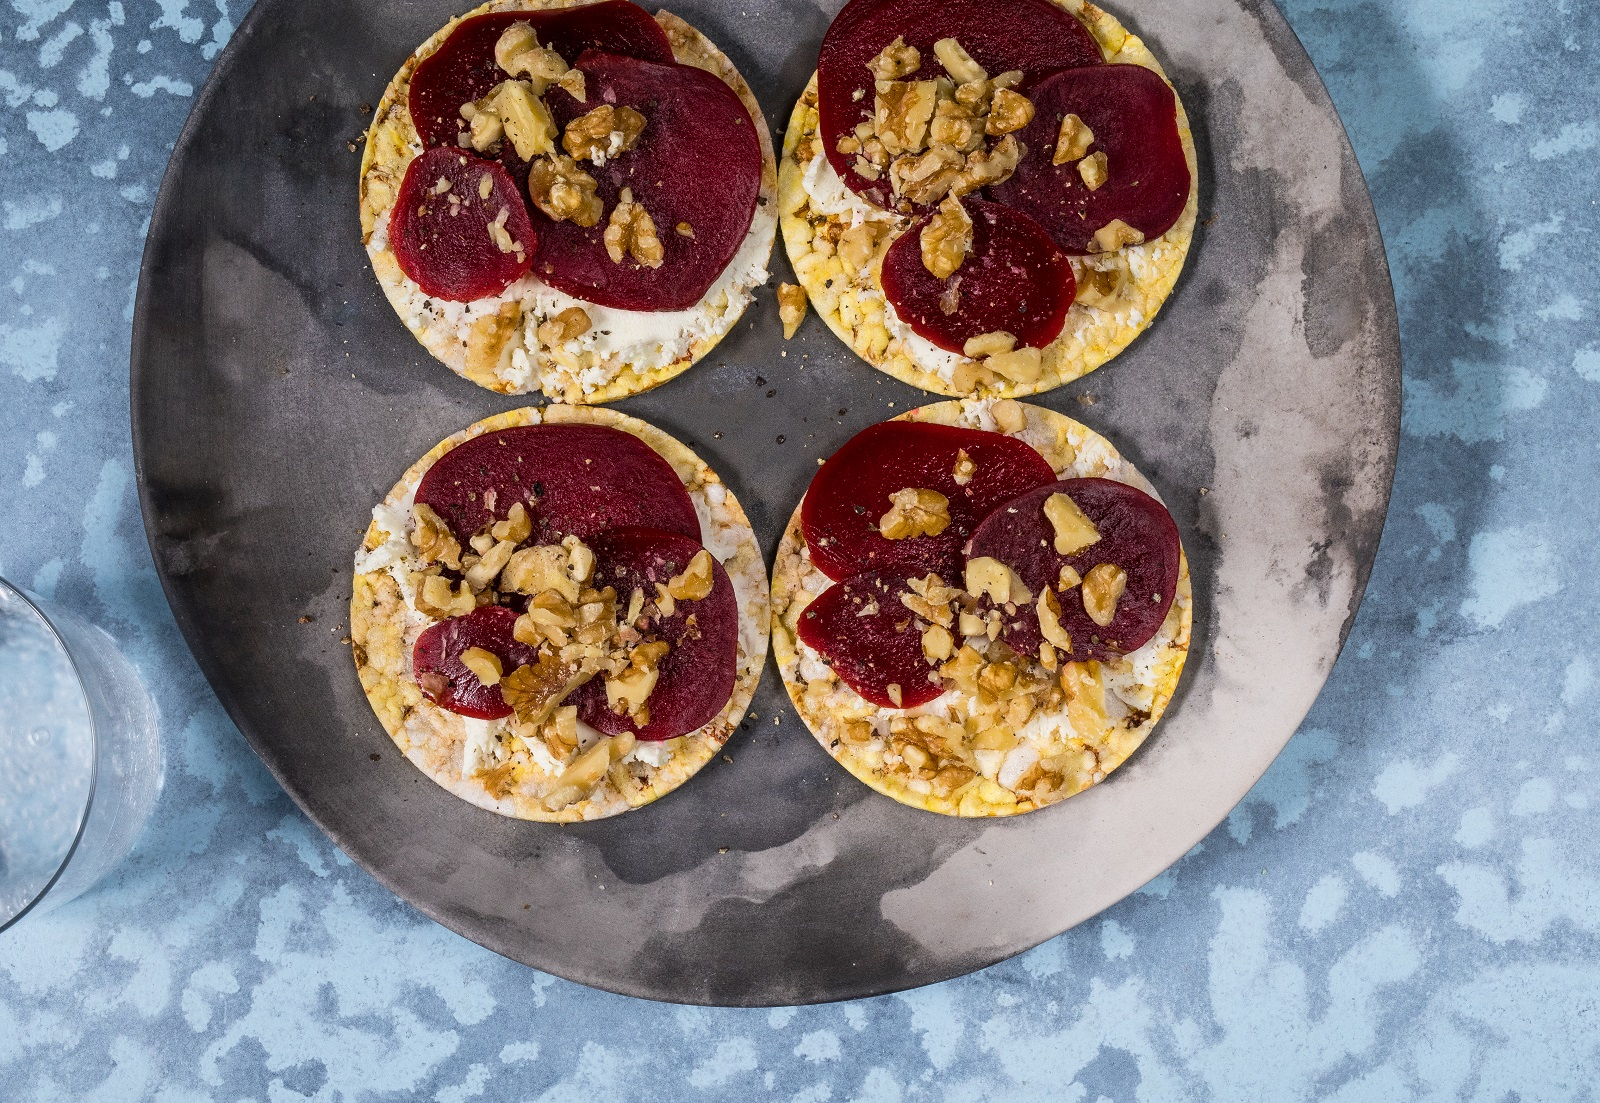 Walnut, Beetroot & Goat's Cheese on CORN THINS slices